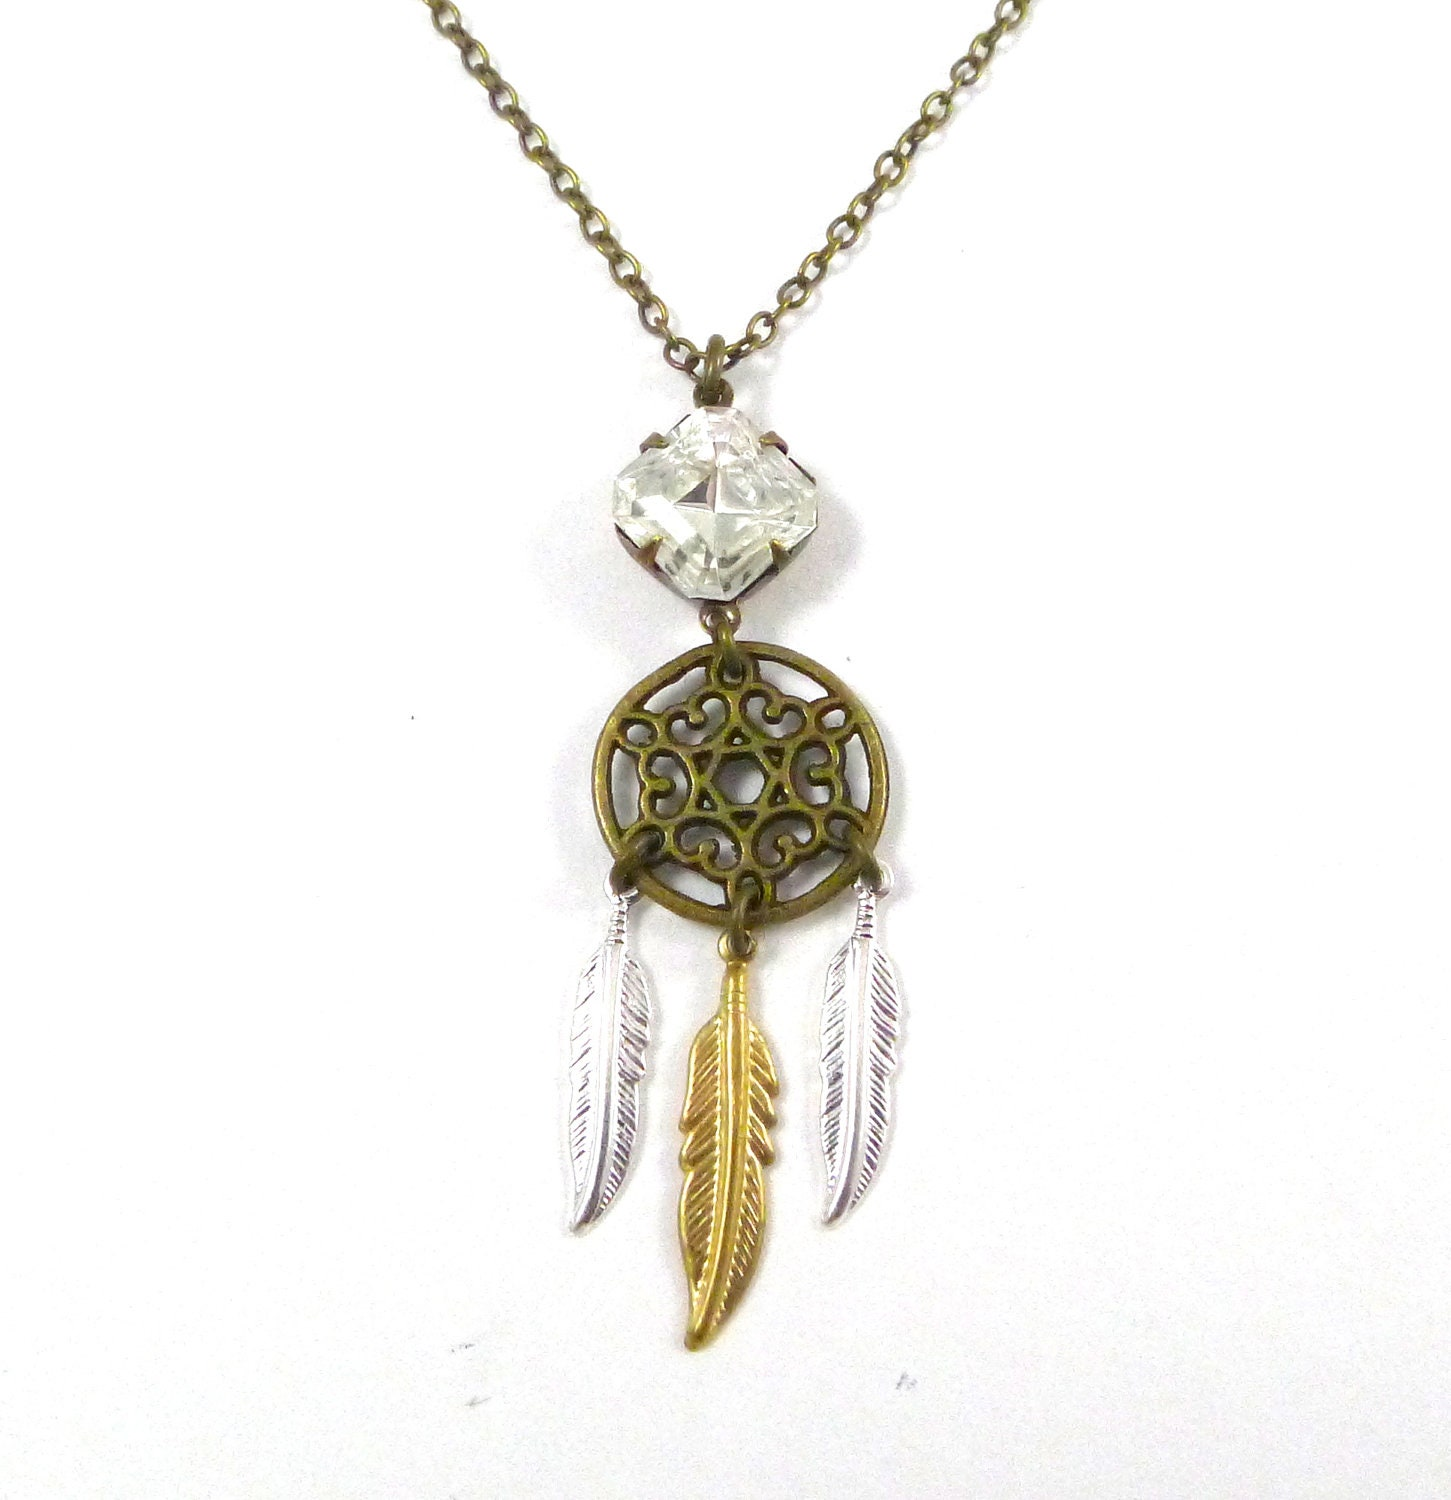 Dreamcatcher Adjustable Necklace Hung above beds to ensnare bad dreams, the dreamcatcher connects the universe with our minds. Traditionally handmade from a willow branch, they come to us from the Ojibwe Native American tribe. The web is imperfect, like a .